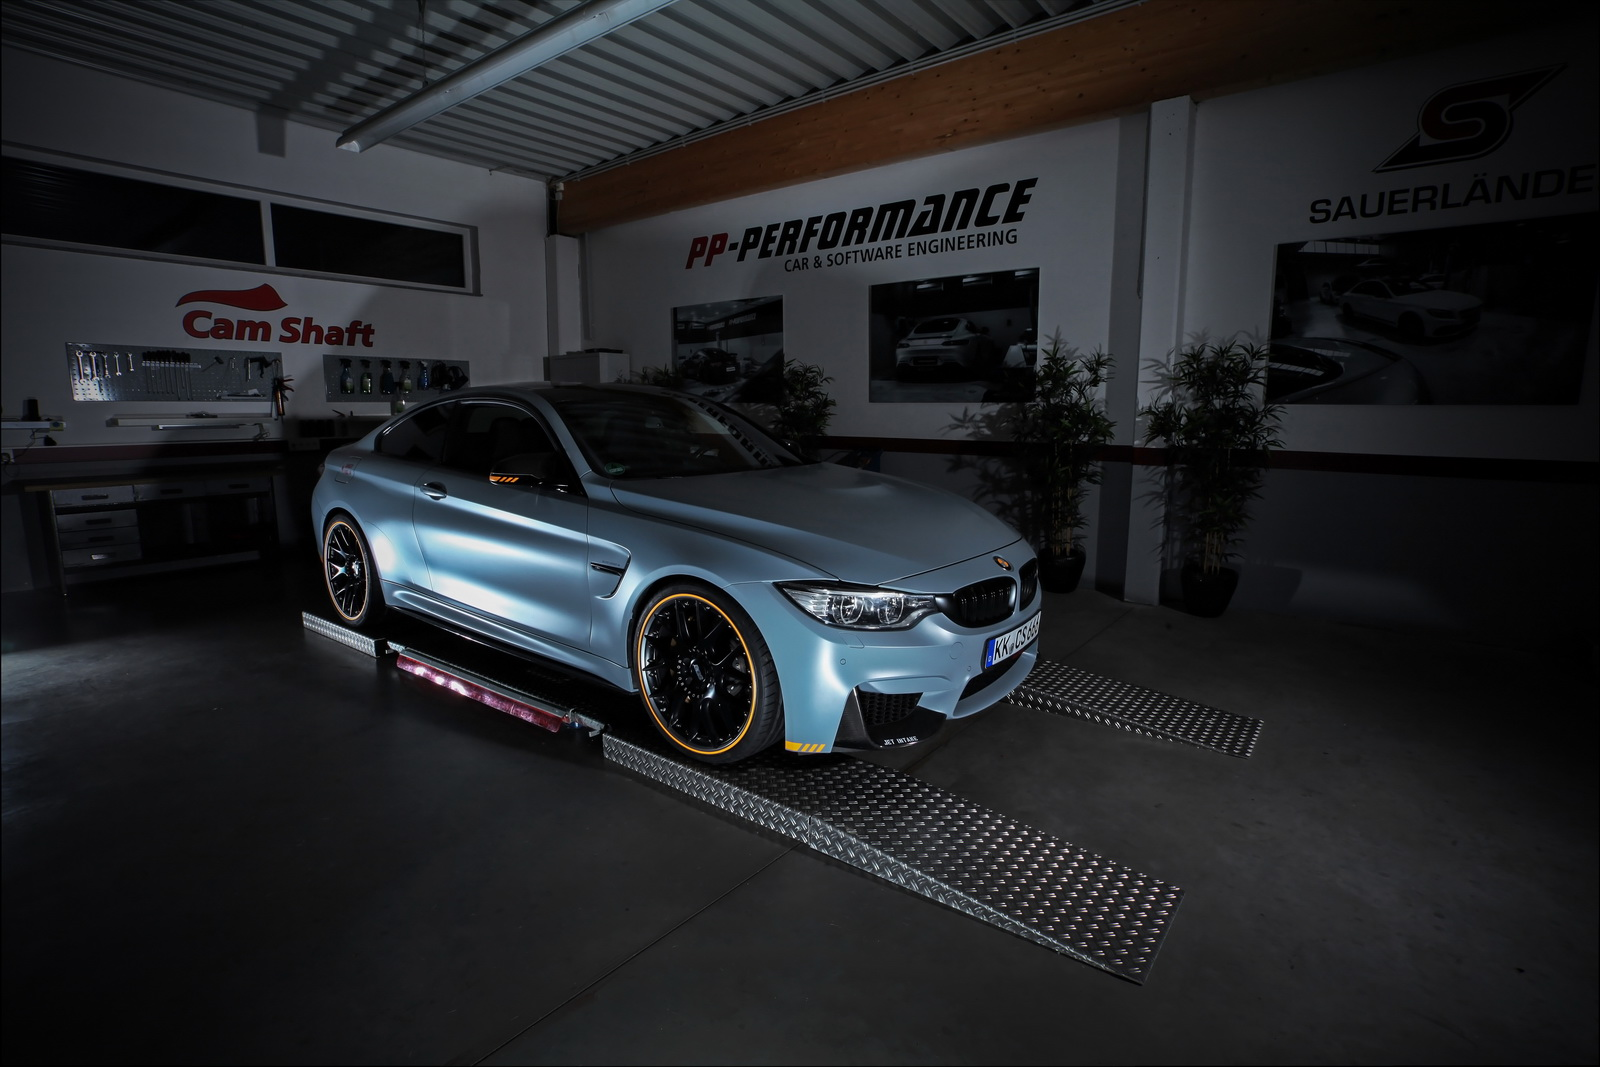 BMW M4 by Cam-Shaft (1)